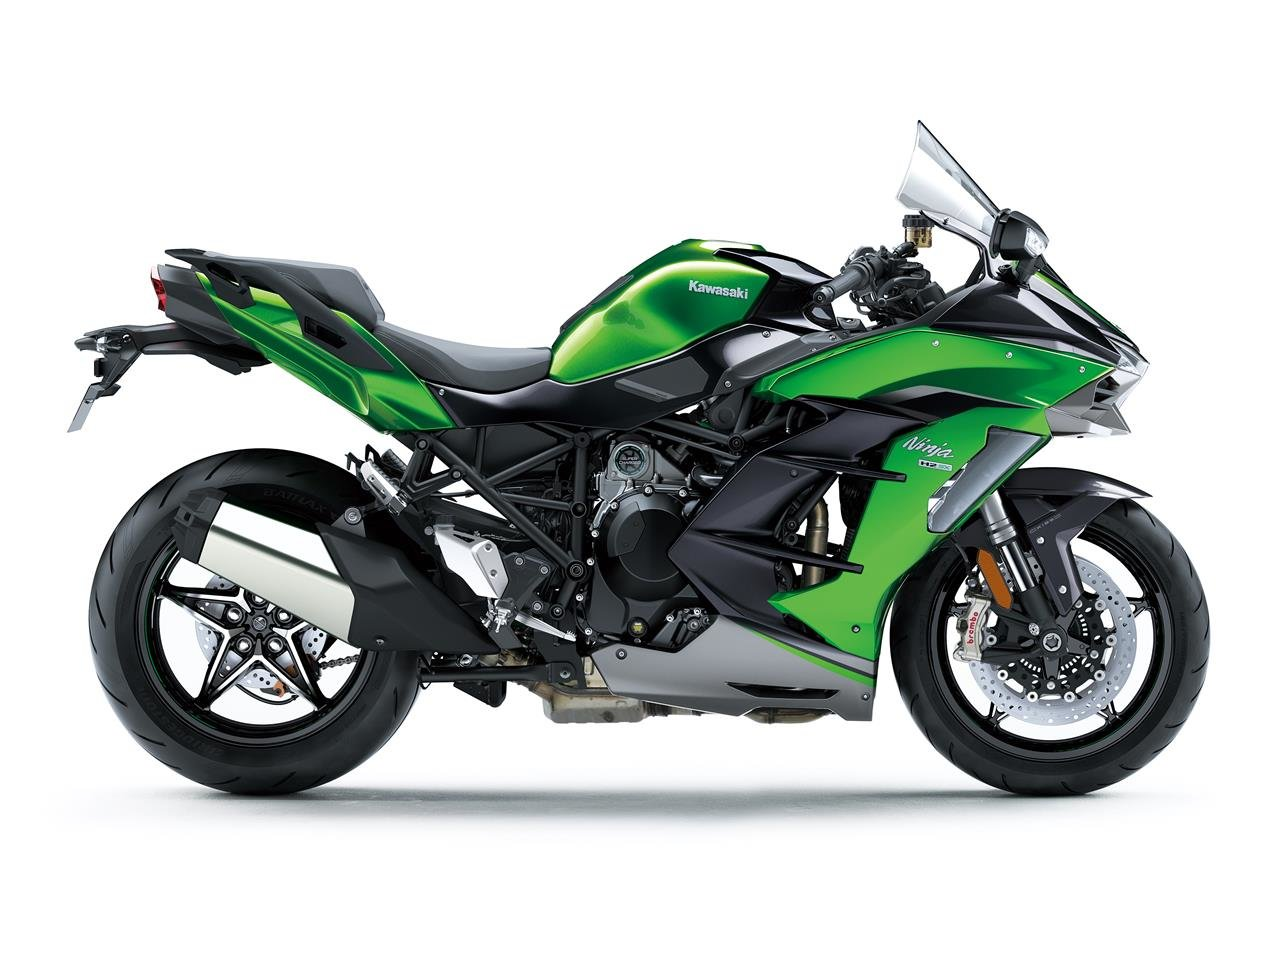 New 2020 Kawasaki Ninja H2 SX SE +*£1,000 PAID, FREE Deliver For Sale (picture 2 of 6)